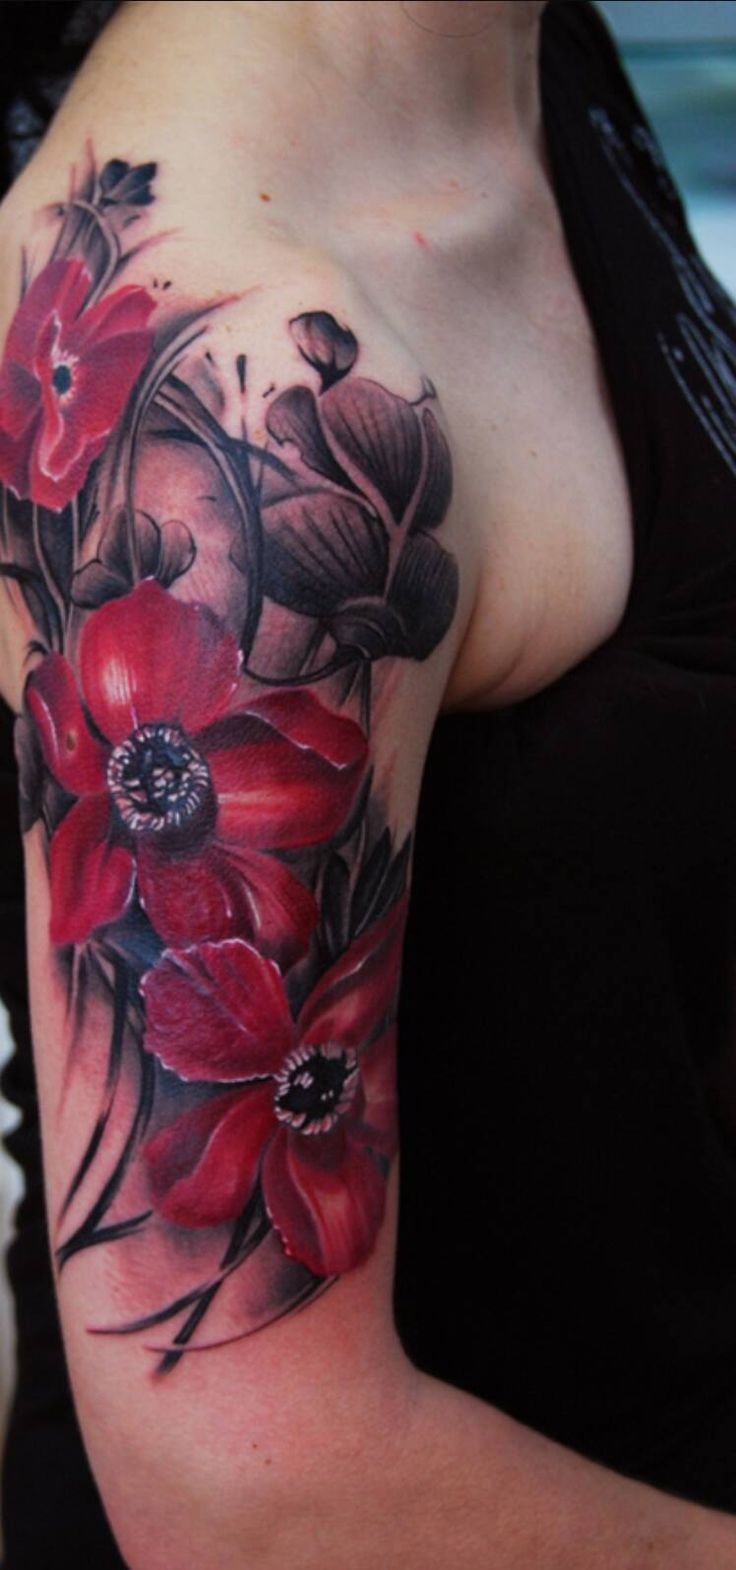 It's A Girl Thing #ItsAGirlThing Floral Flowers Tattoos TheBERRY TheBERRY WA